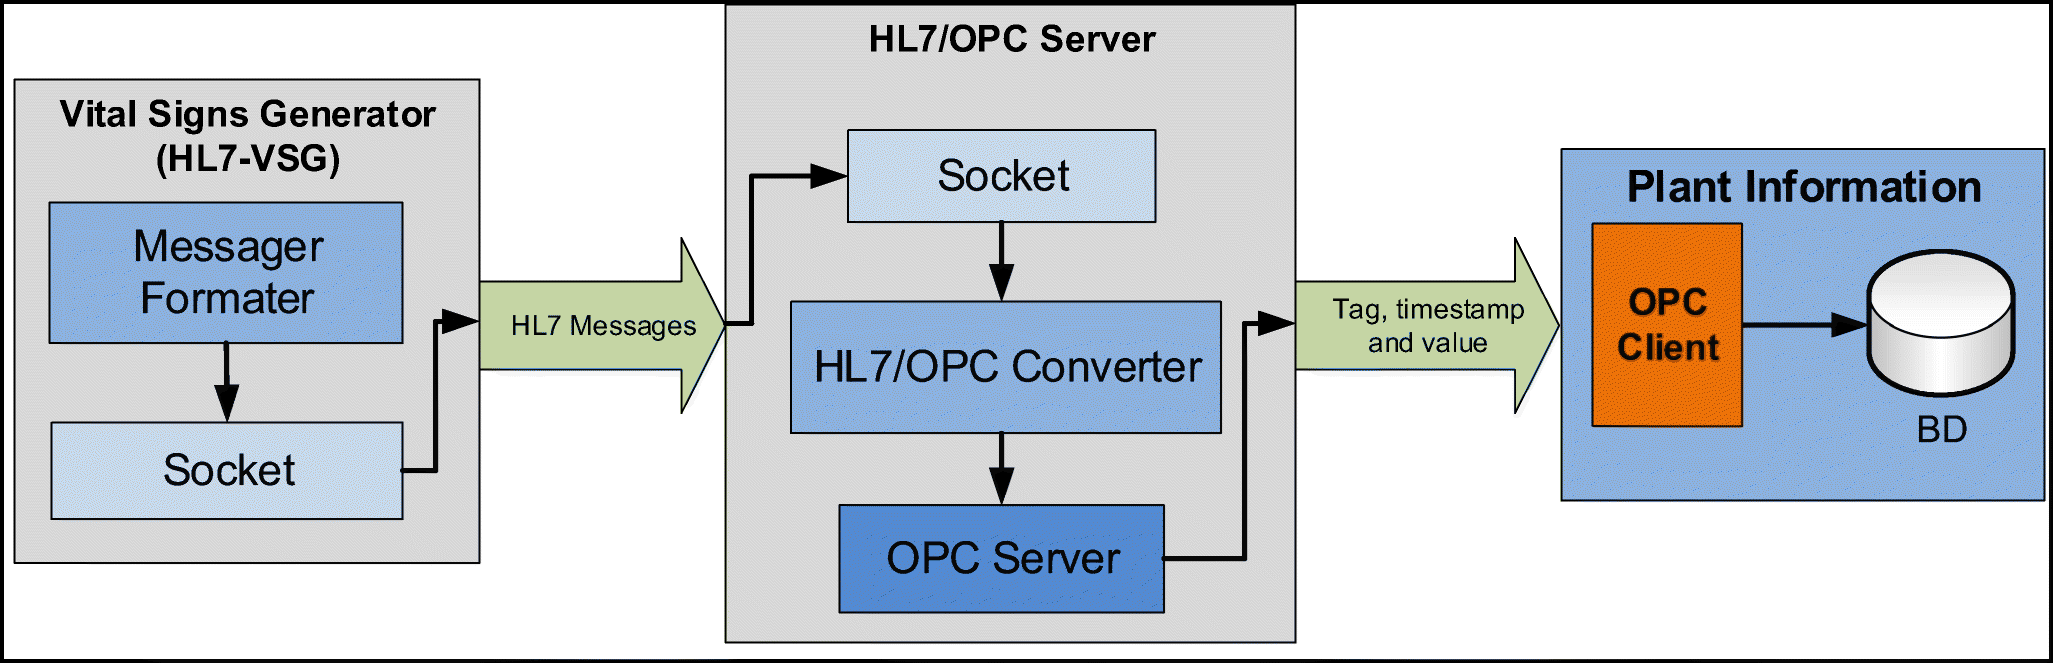 Using OPC and HL7 Standards to Incorporate an Industrial Big Data